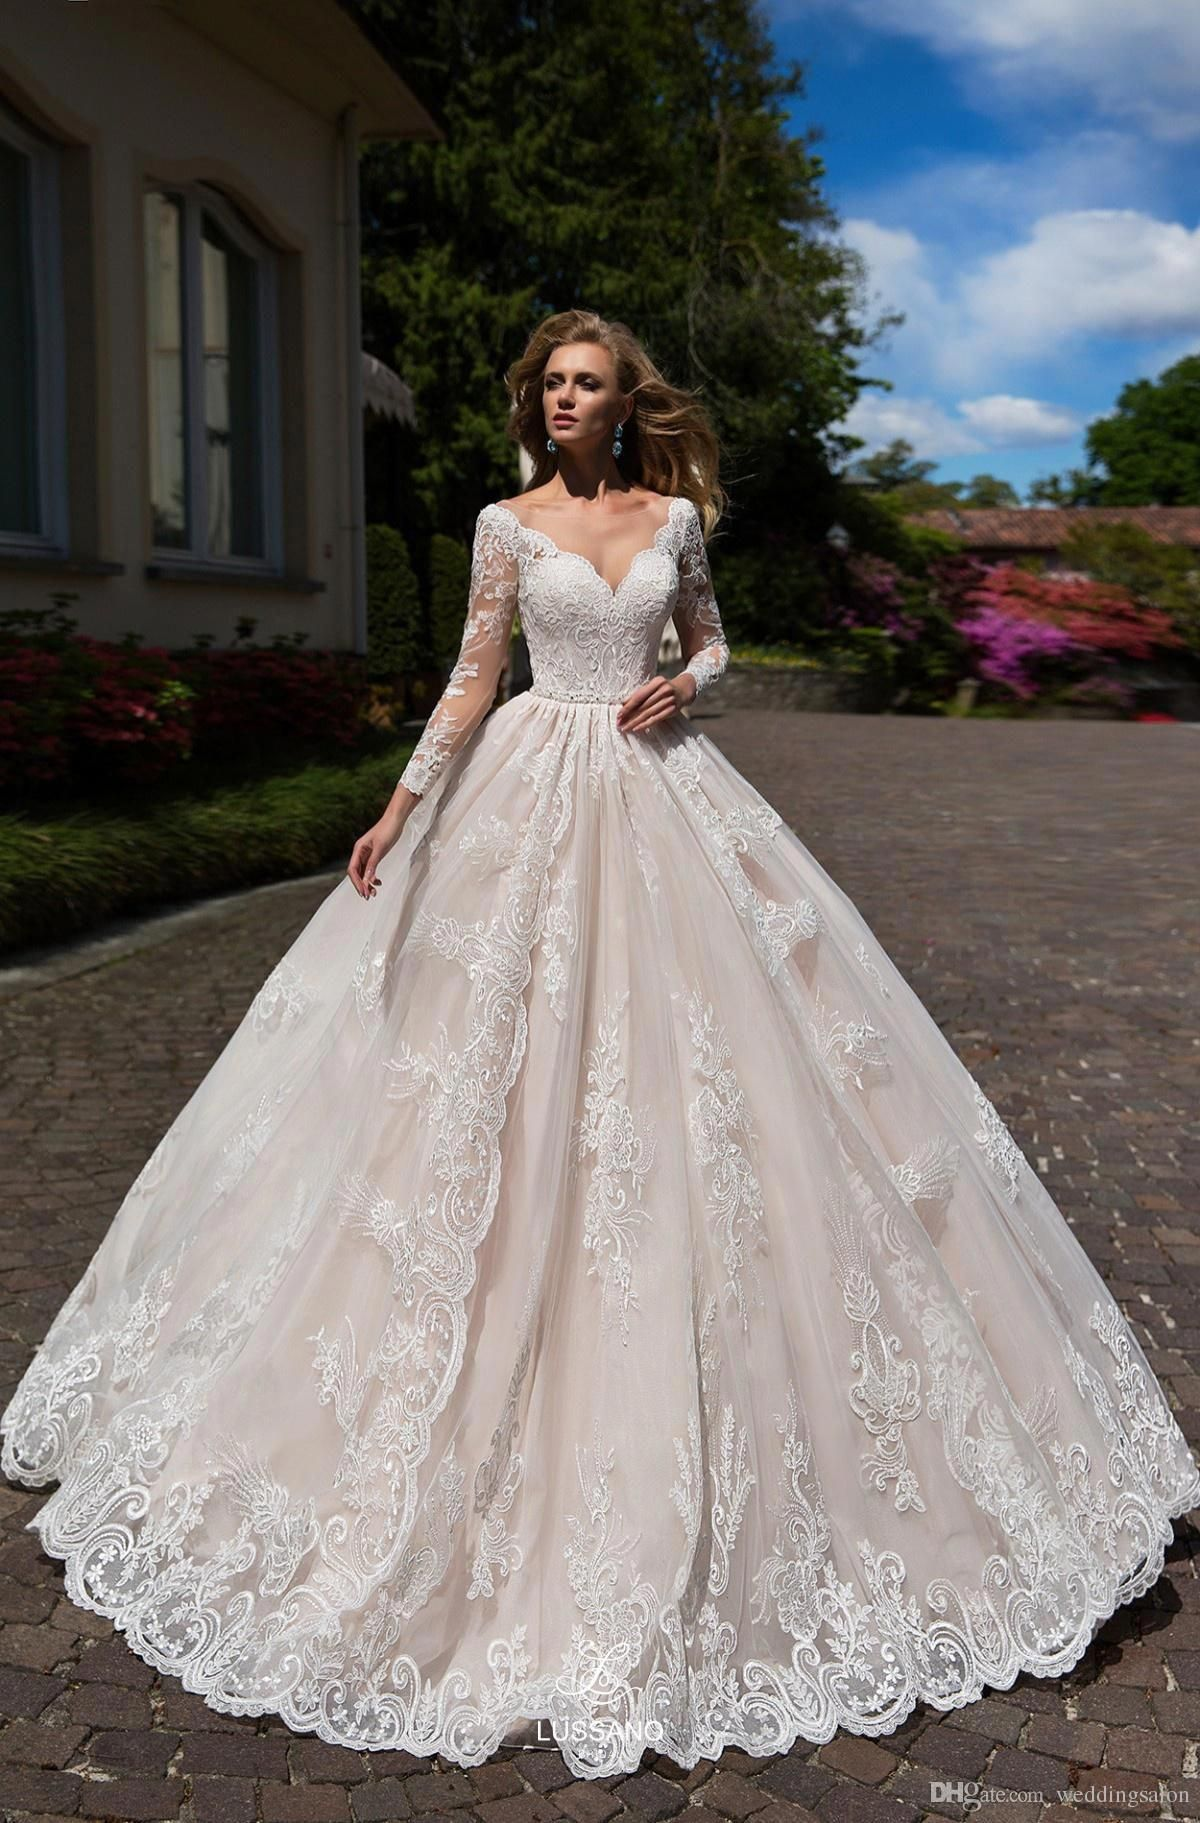 When you first go shopping for bridal gown you will wish to have a